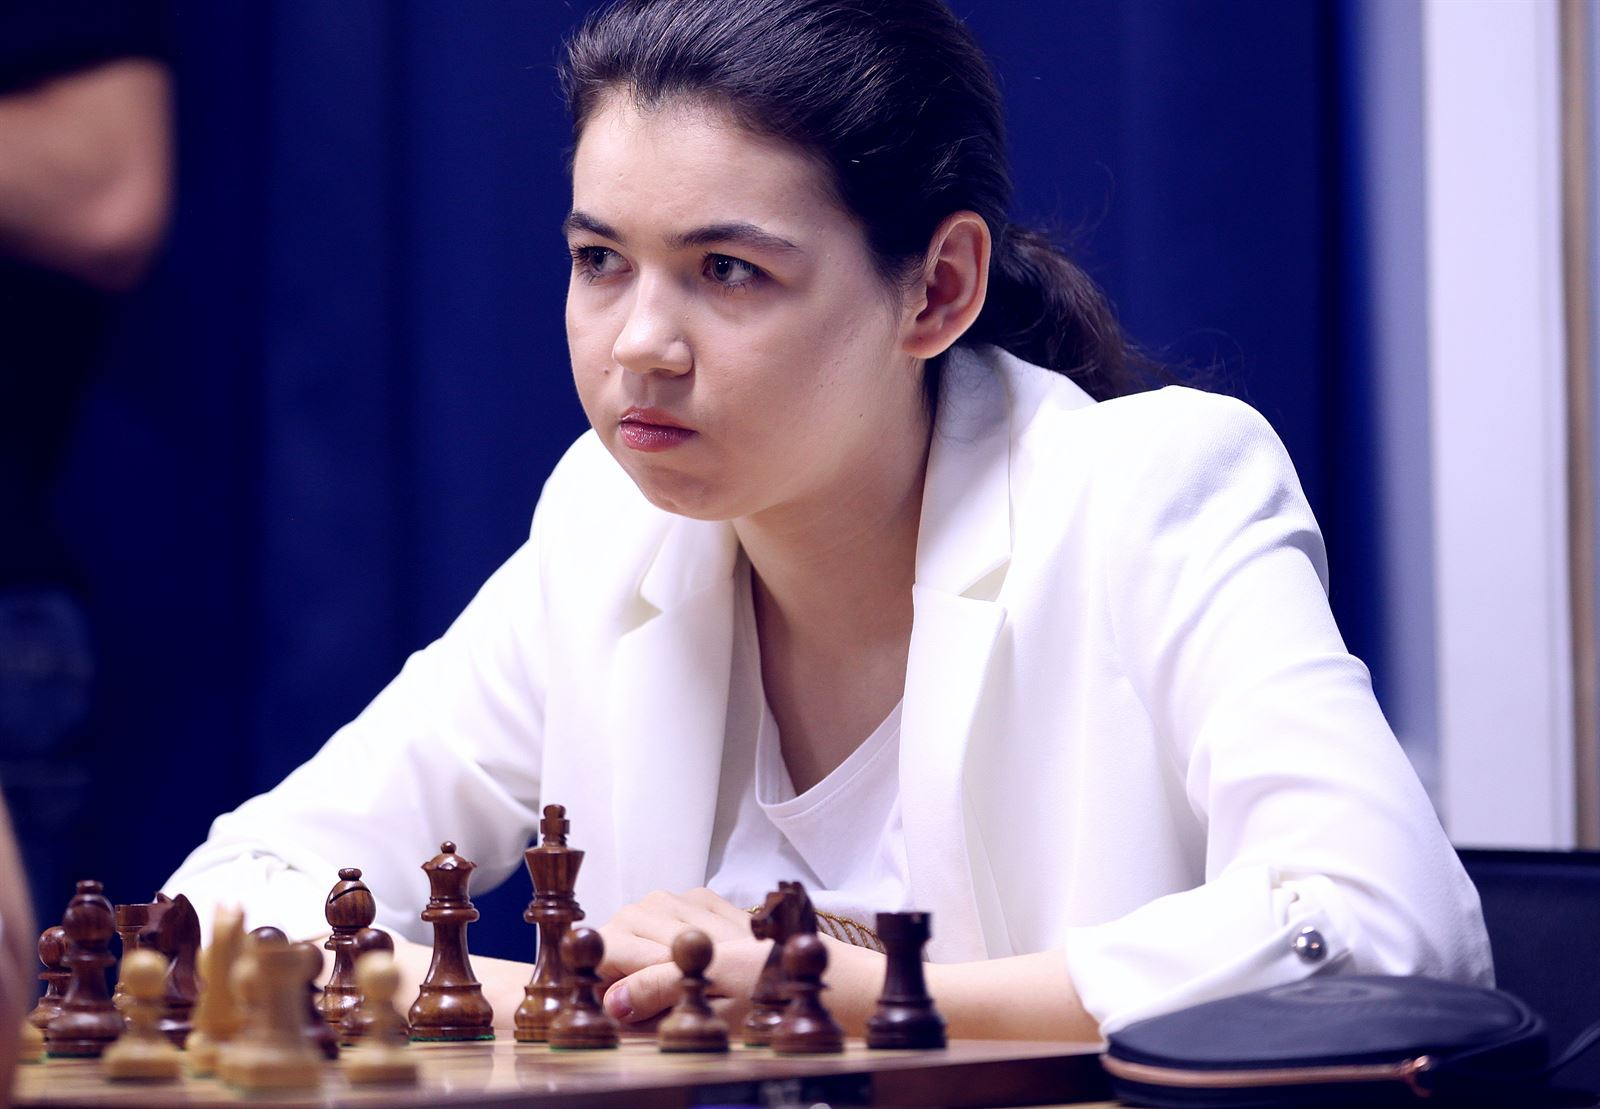 Goryachkina powers towards Candidates triumph | chess24 com